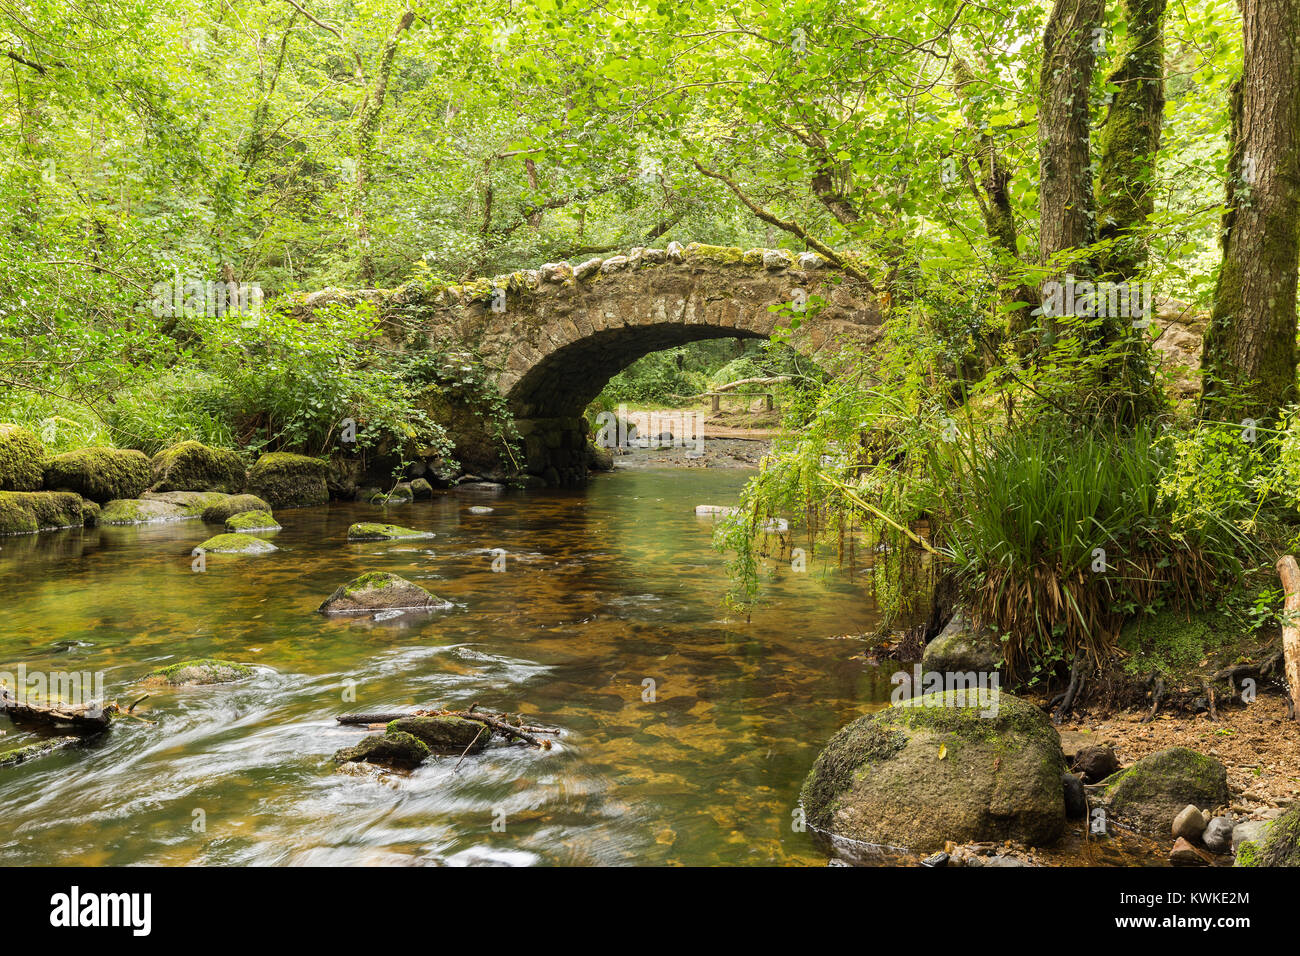 A riverside image of Hisley Bridge an old packhorse bridge over the river Bovey, shot at Dartmoor, Devon, England, - Stock Image